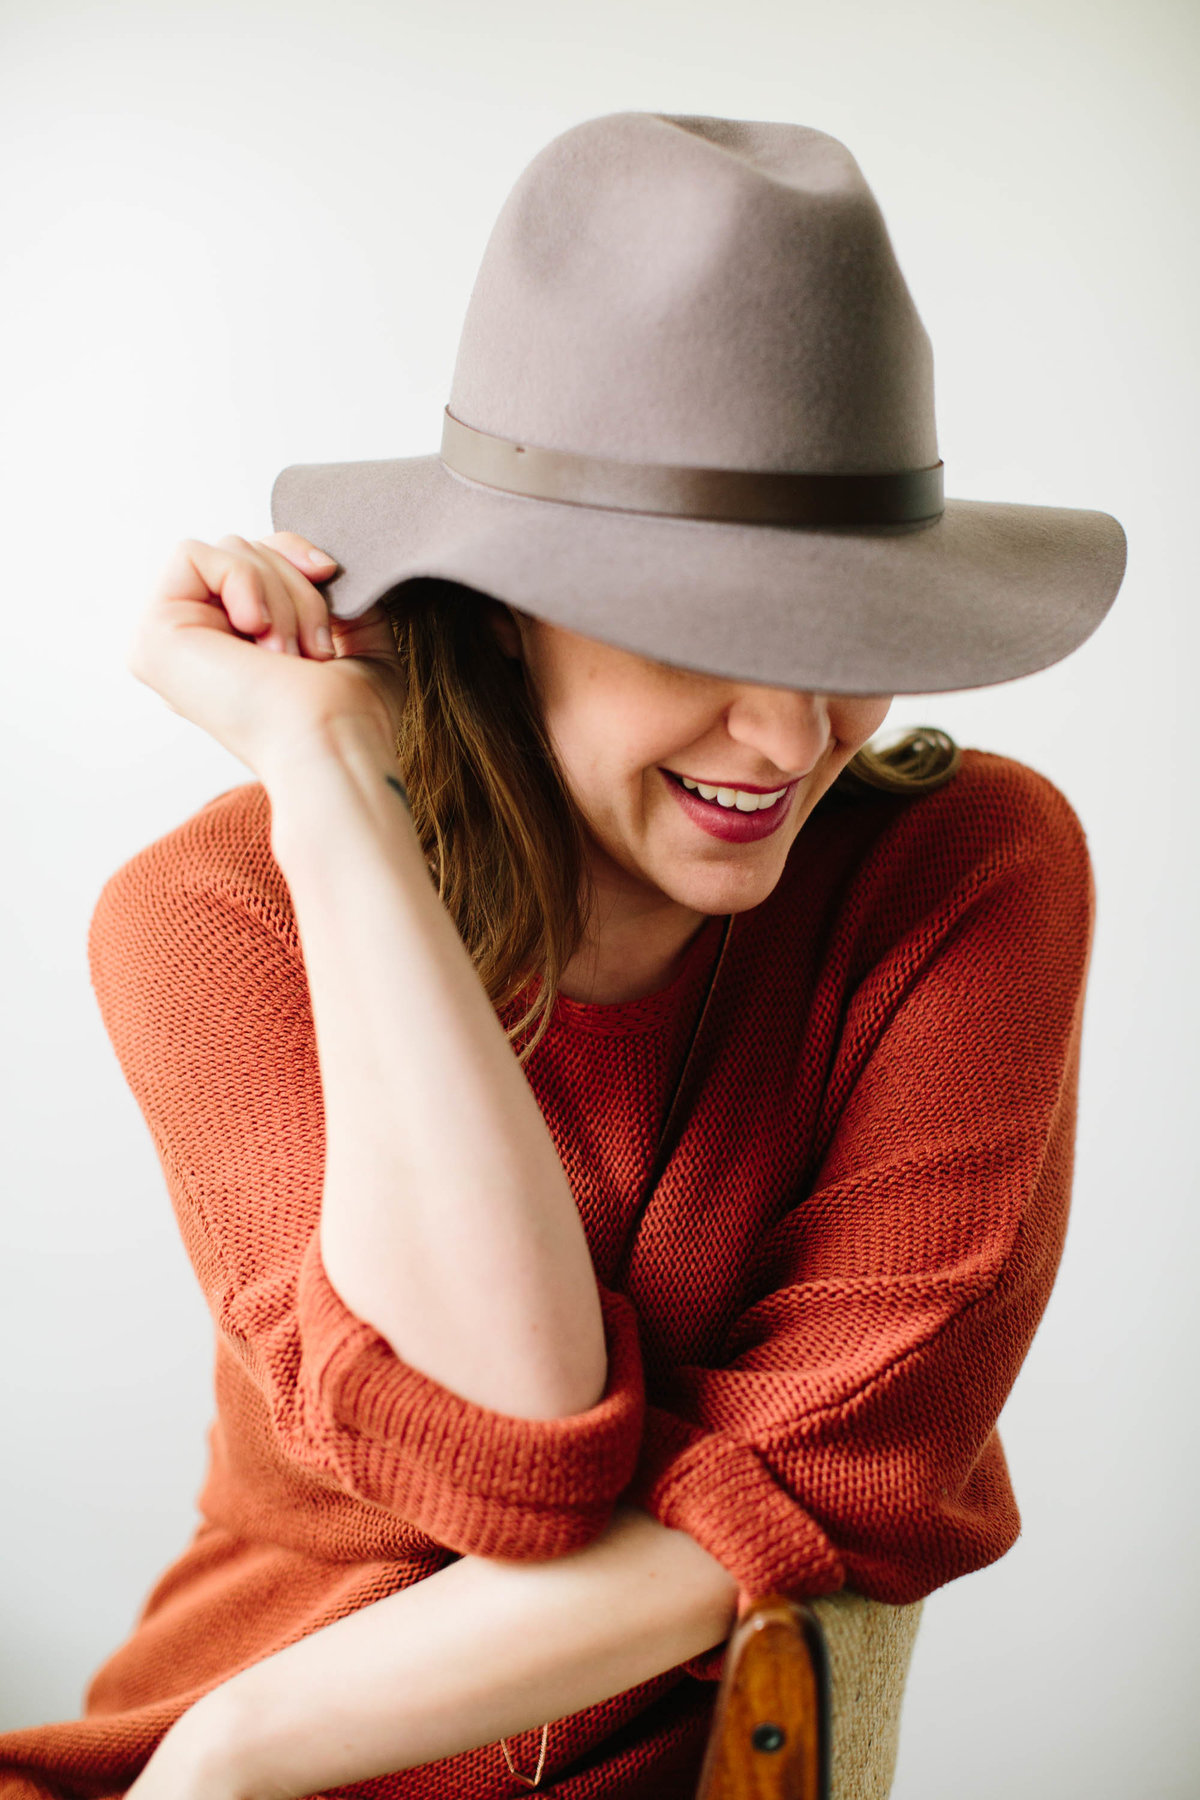 smiling woman with hat and orange sweater studio headshot